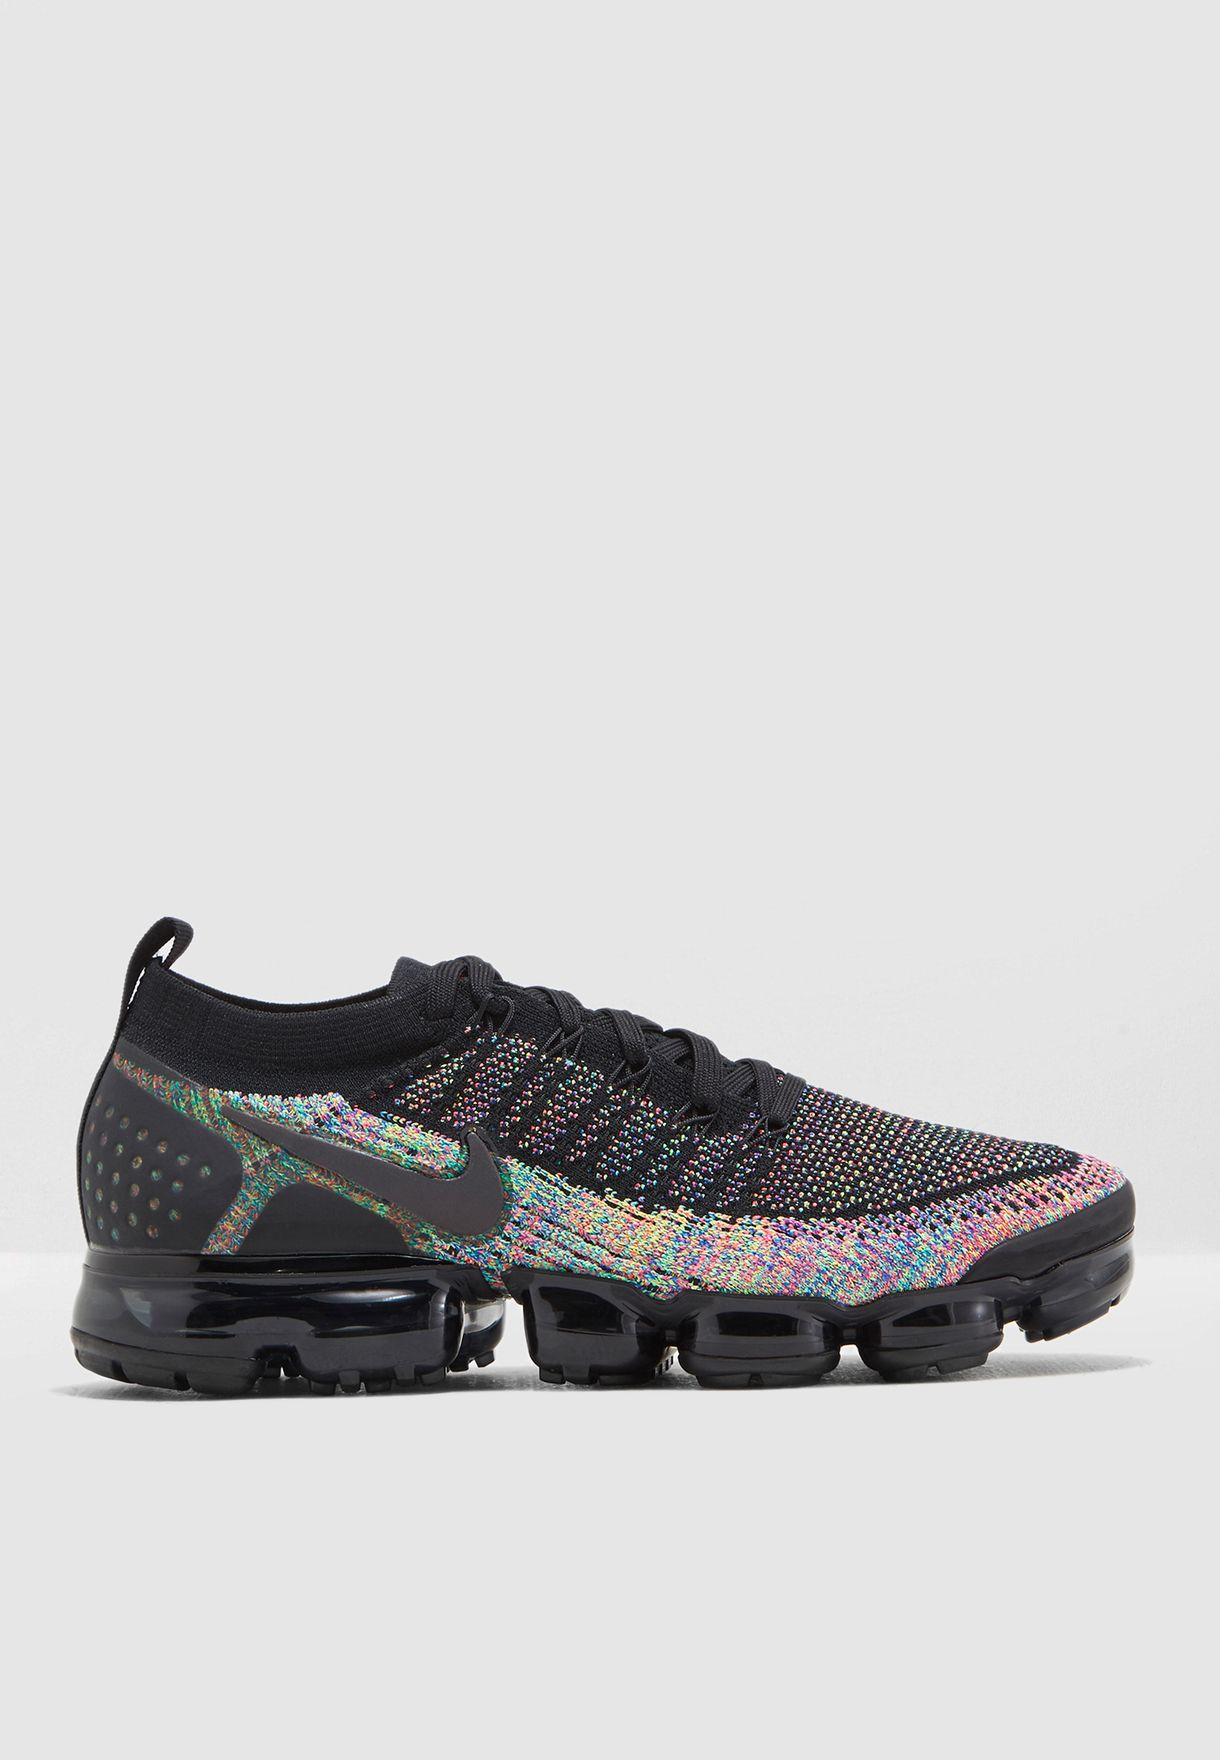 96a7df3d4678 Shop Nike multicolor Air Vapormax Flyknit 2 942842-017 for Men in ...